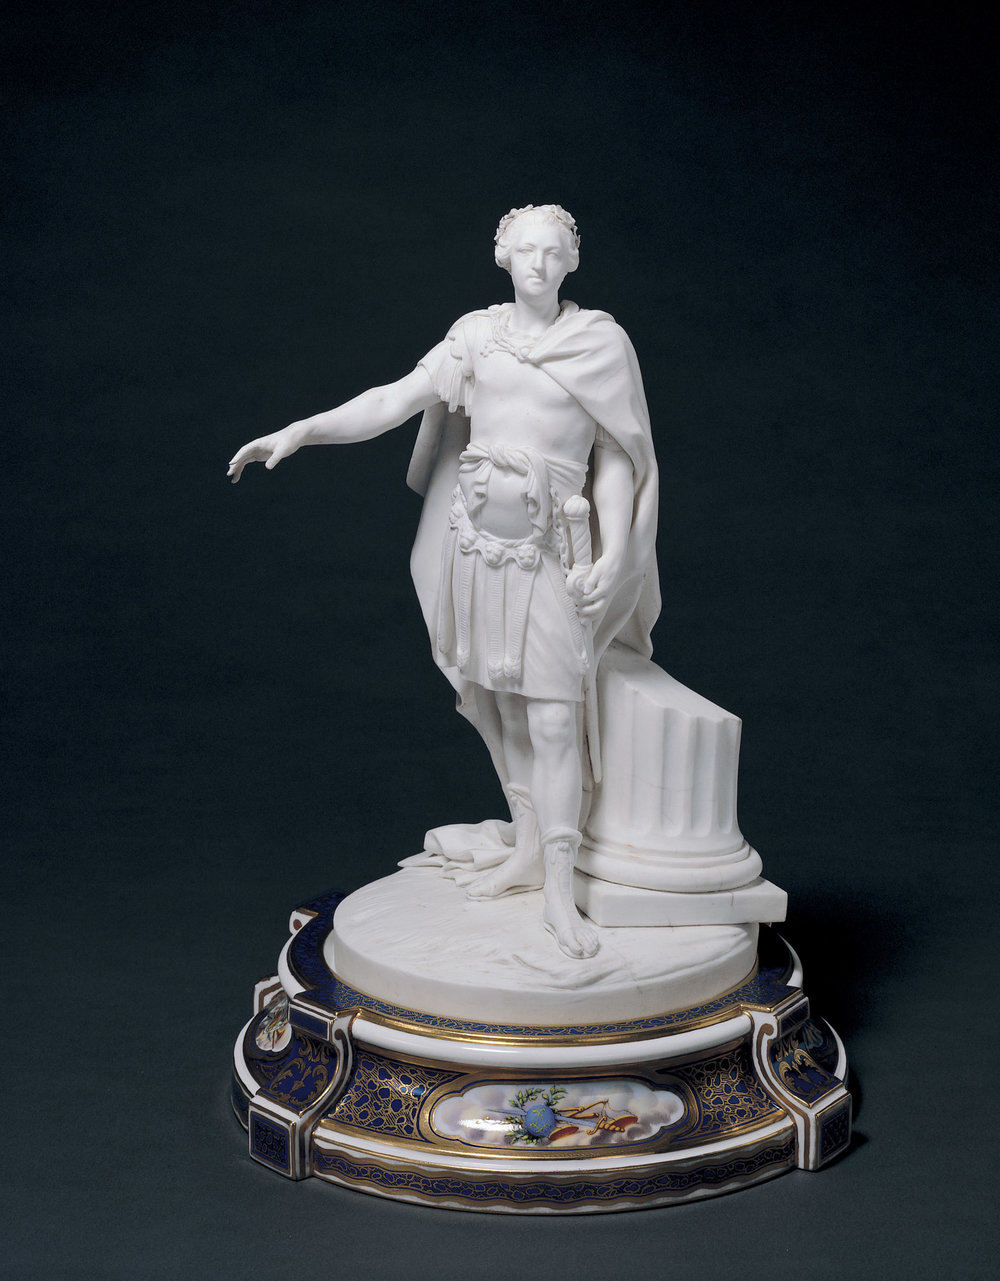 Sèvres Porcelain Factory,  Figurine of Louis XV , 1770, 1917.958